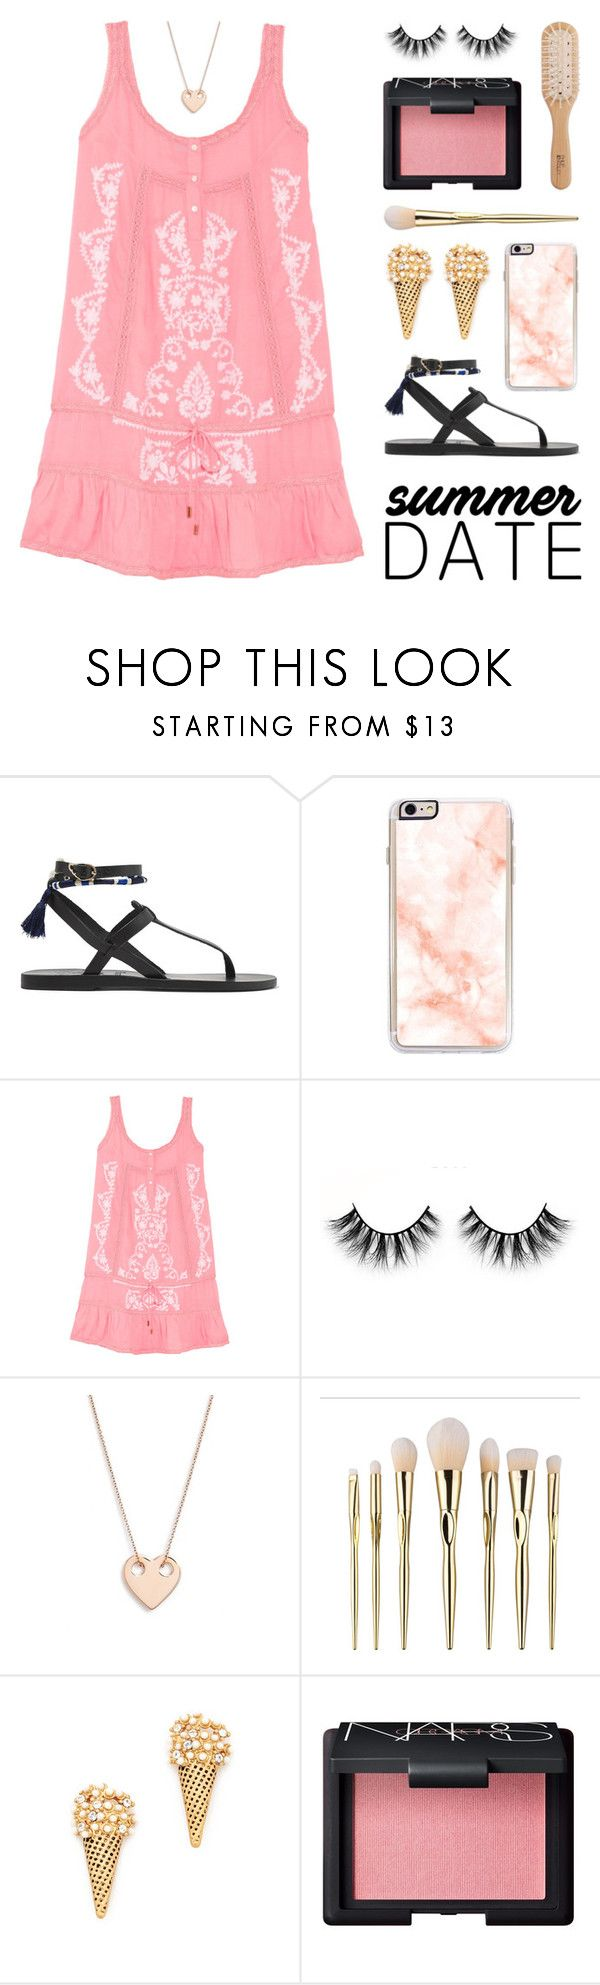 """Summer Date Night"" by lgb321 ❤ liked on Polyvore featuring Ancient Greek Sandals, Zero Gravity, Melissa Odabash, Ginette NY, Marc Jacobs, NARS Cosmetics, Philip Kingsley, Summer, polyvoreeditorial and summerdate"